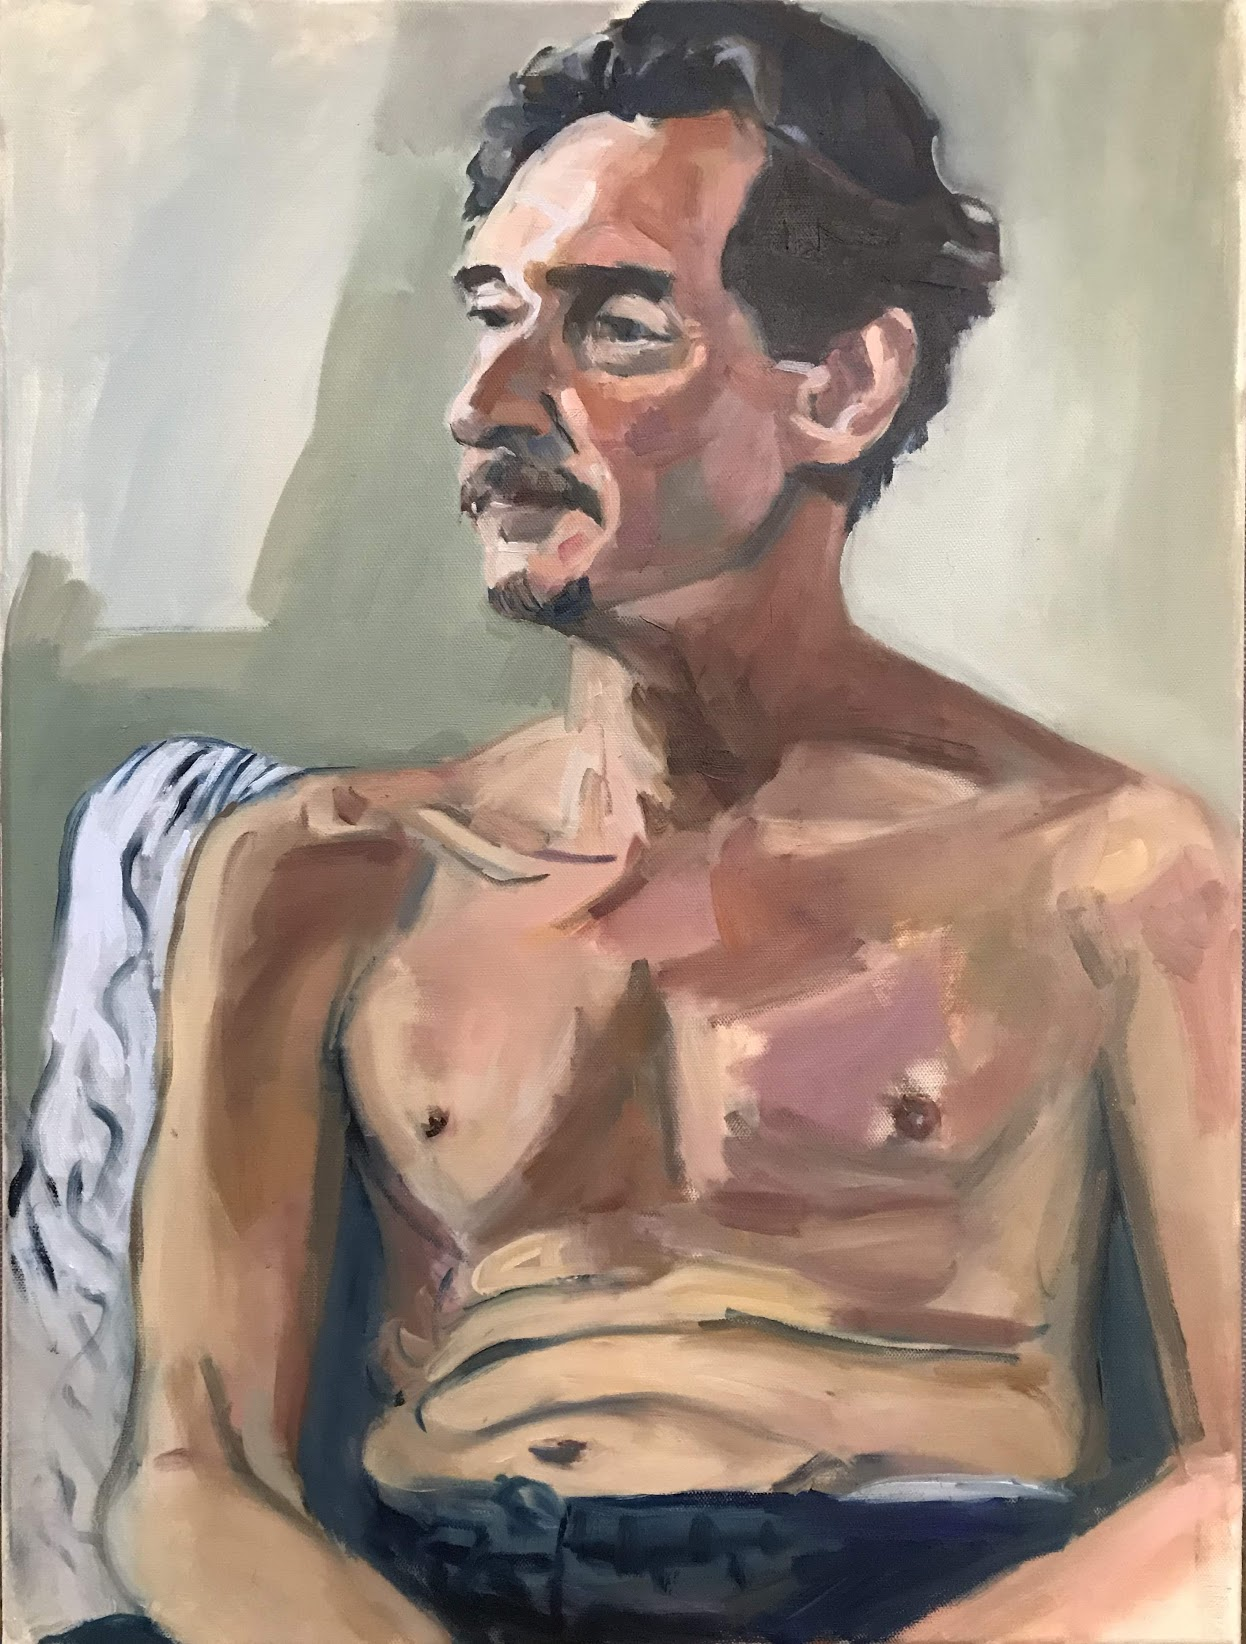 Oil portrait of seated model, from life,  semi clothed, in natural lighting